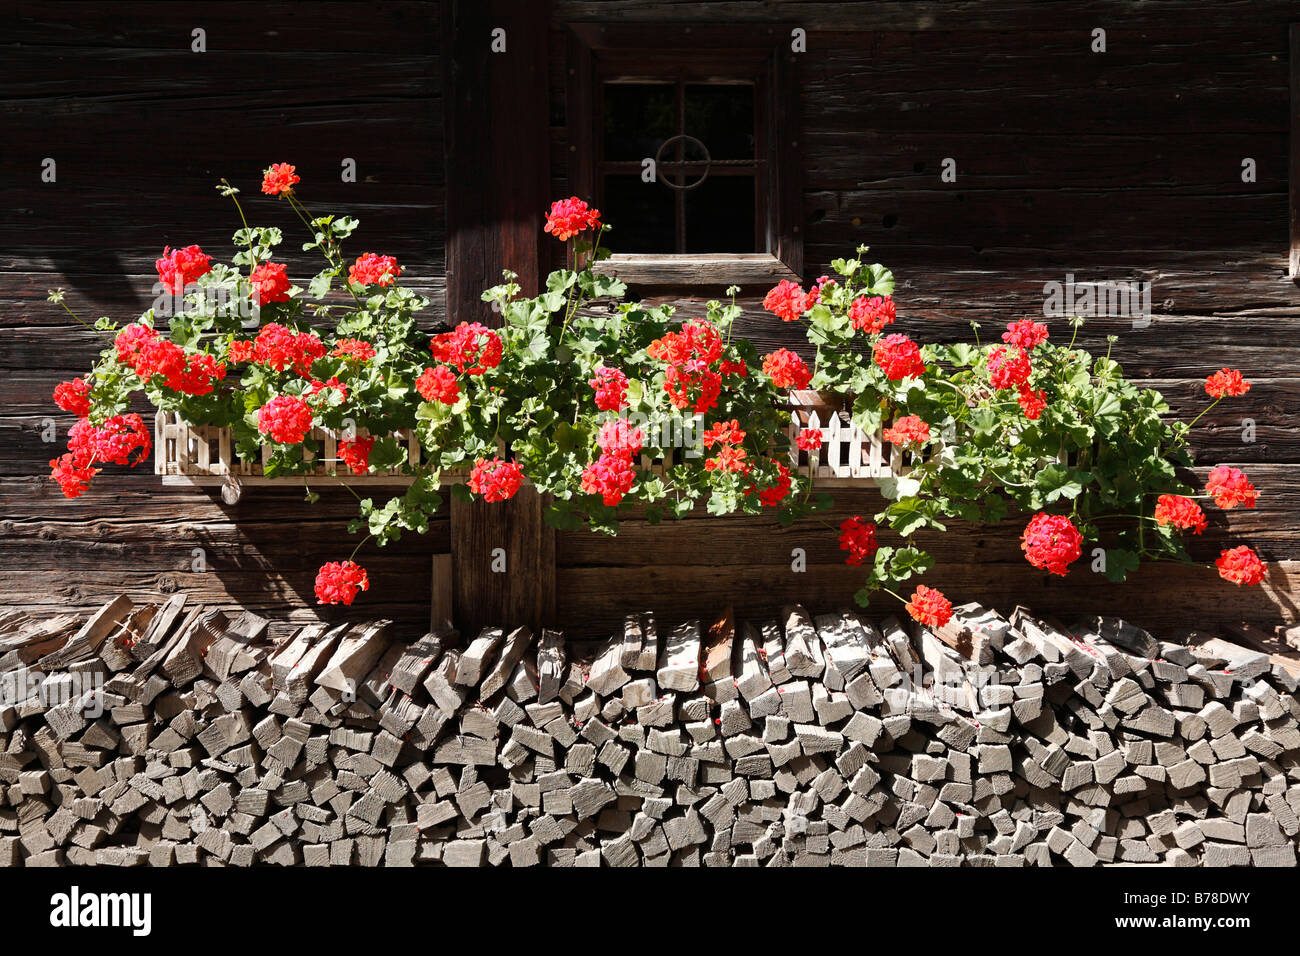 Geraniums on a wooden house, Austrian Open Air Museum Stuebing, Styria, Austria, Europe - Stock Image